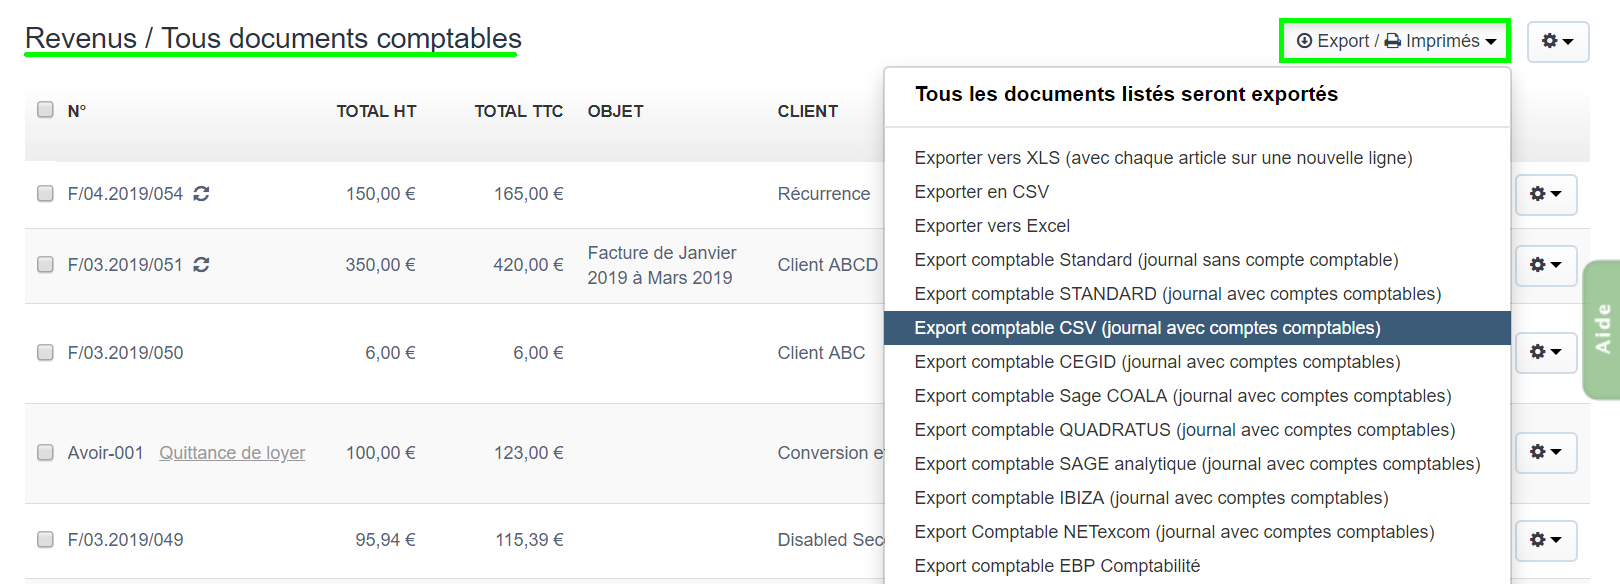 Facturation Document Comptable Export CSV Exercice